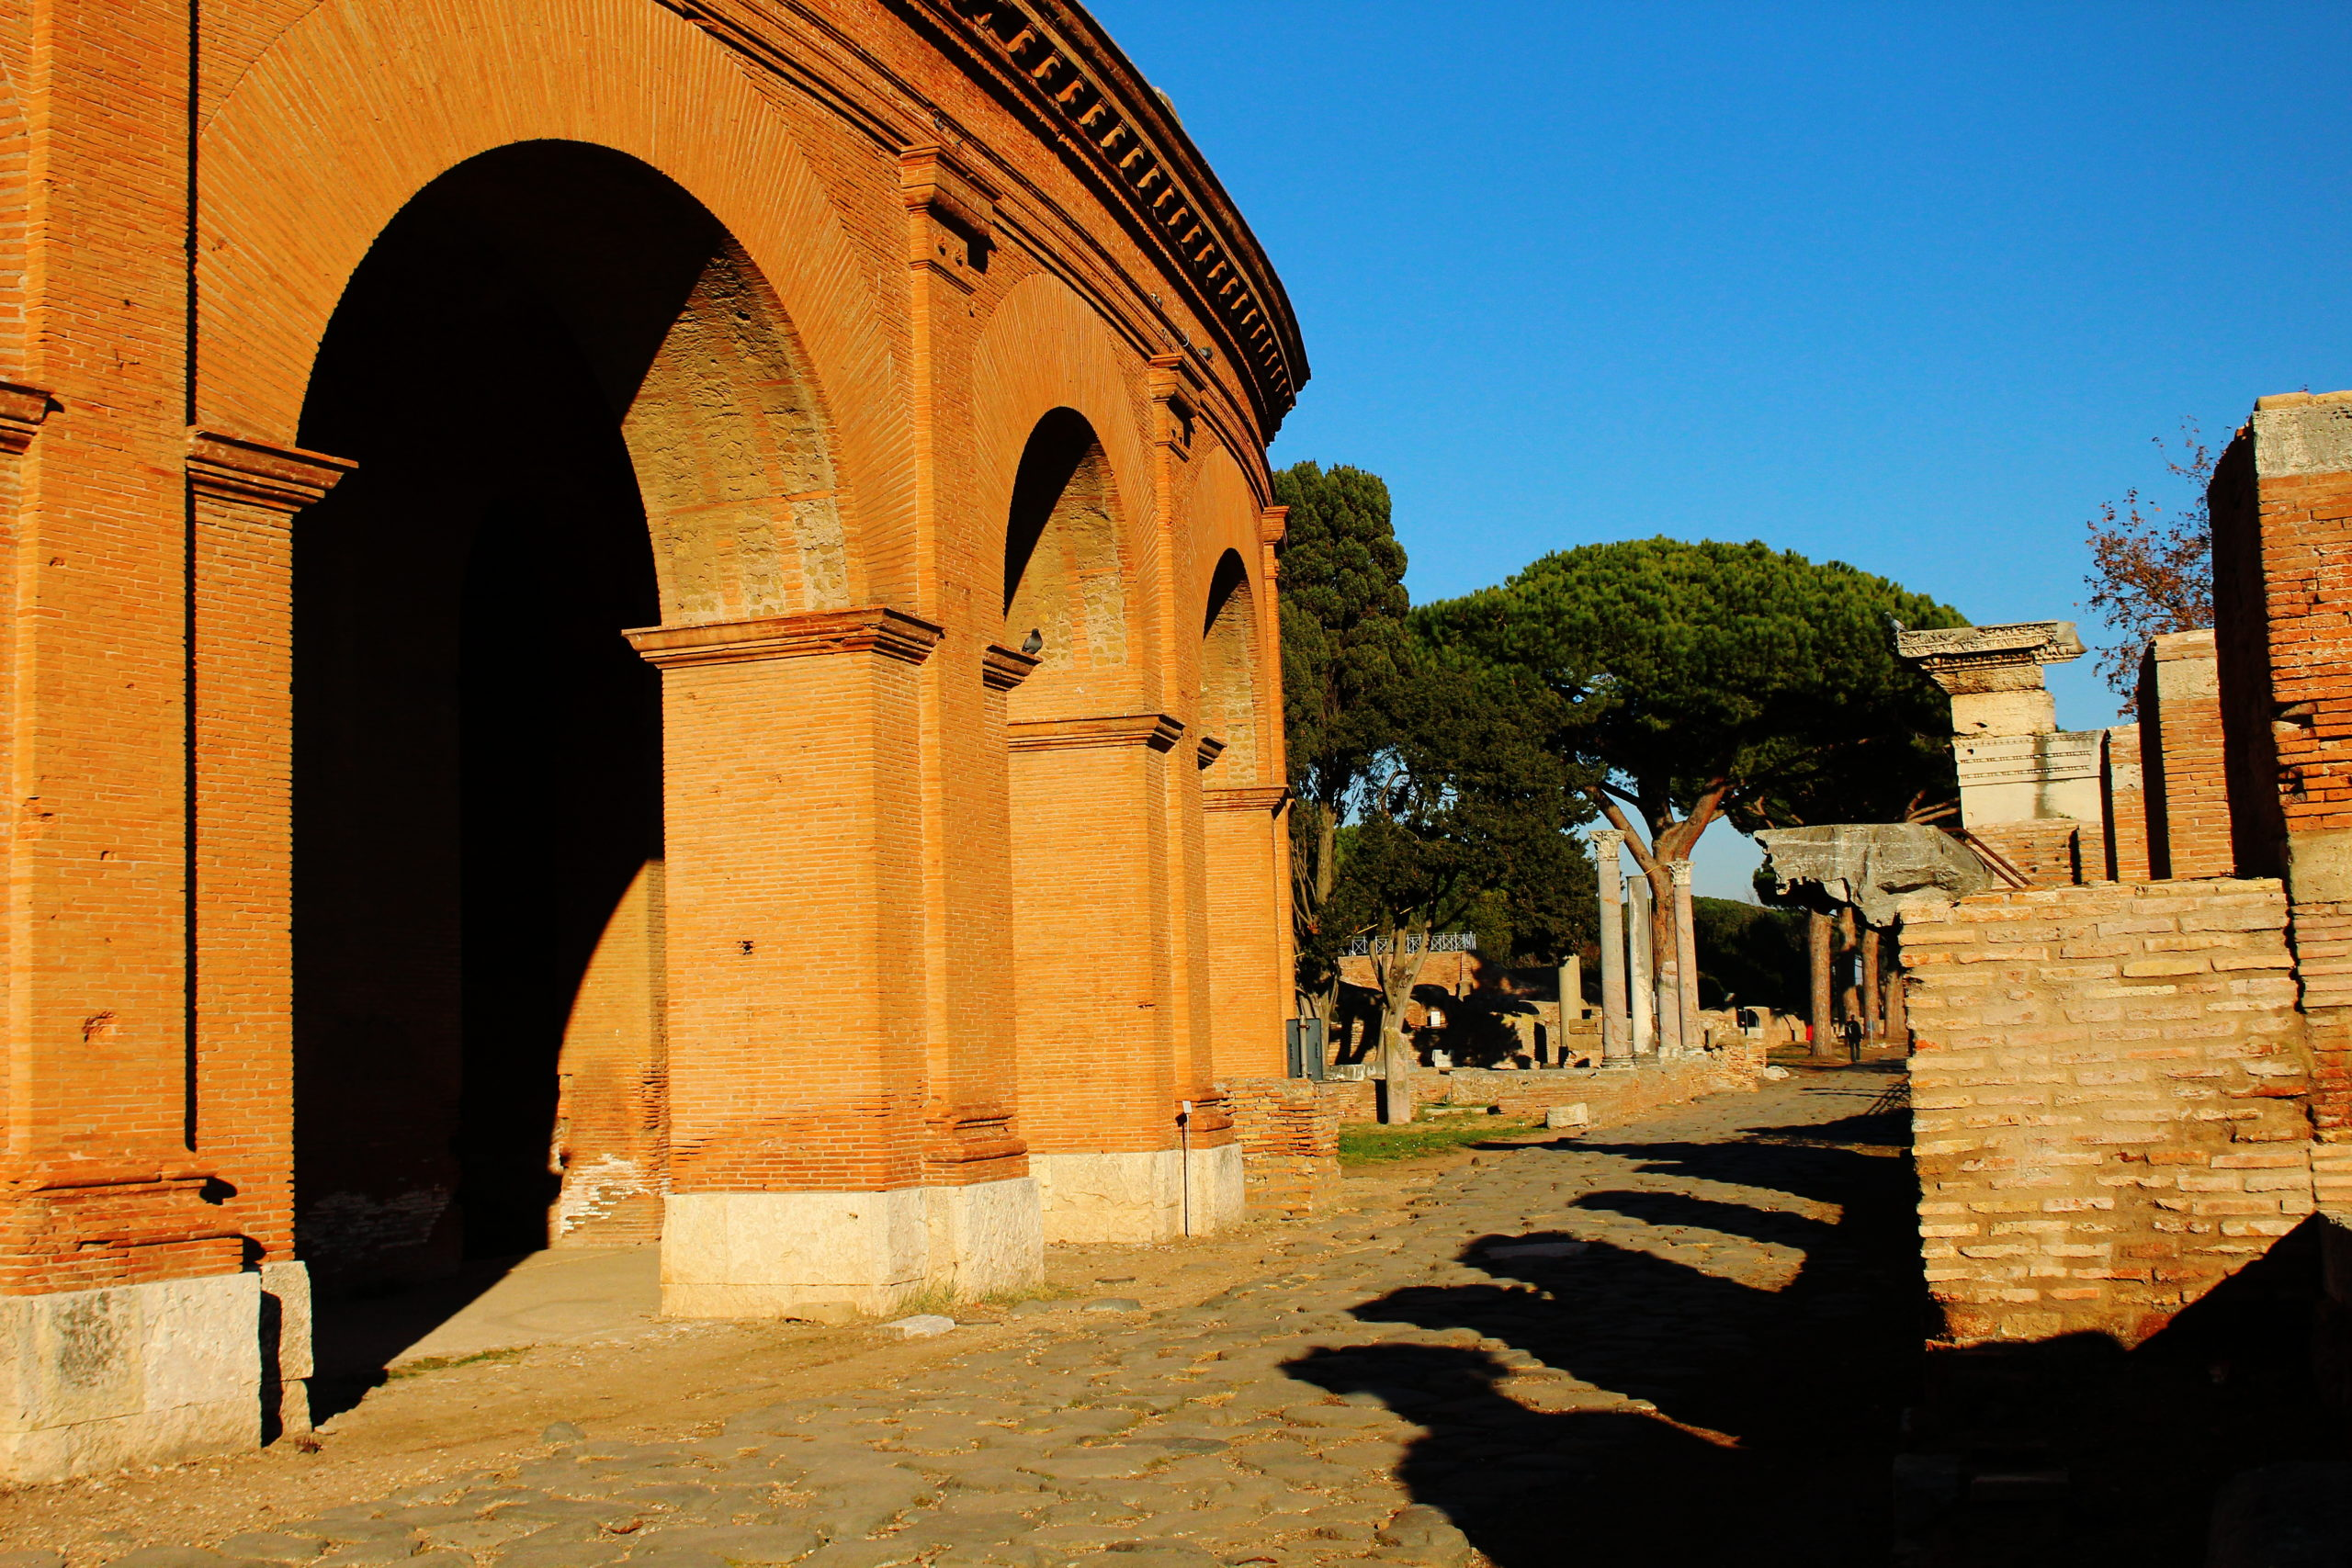 Visiting Ostia Antica from Rome